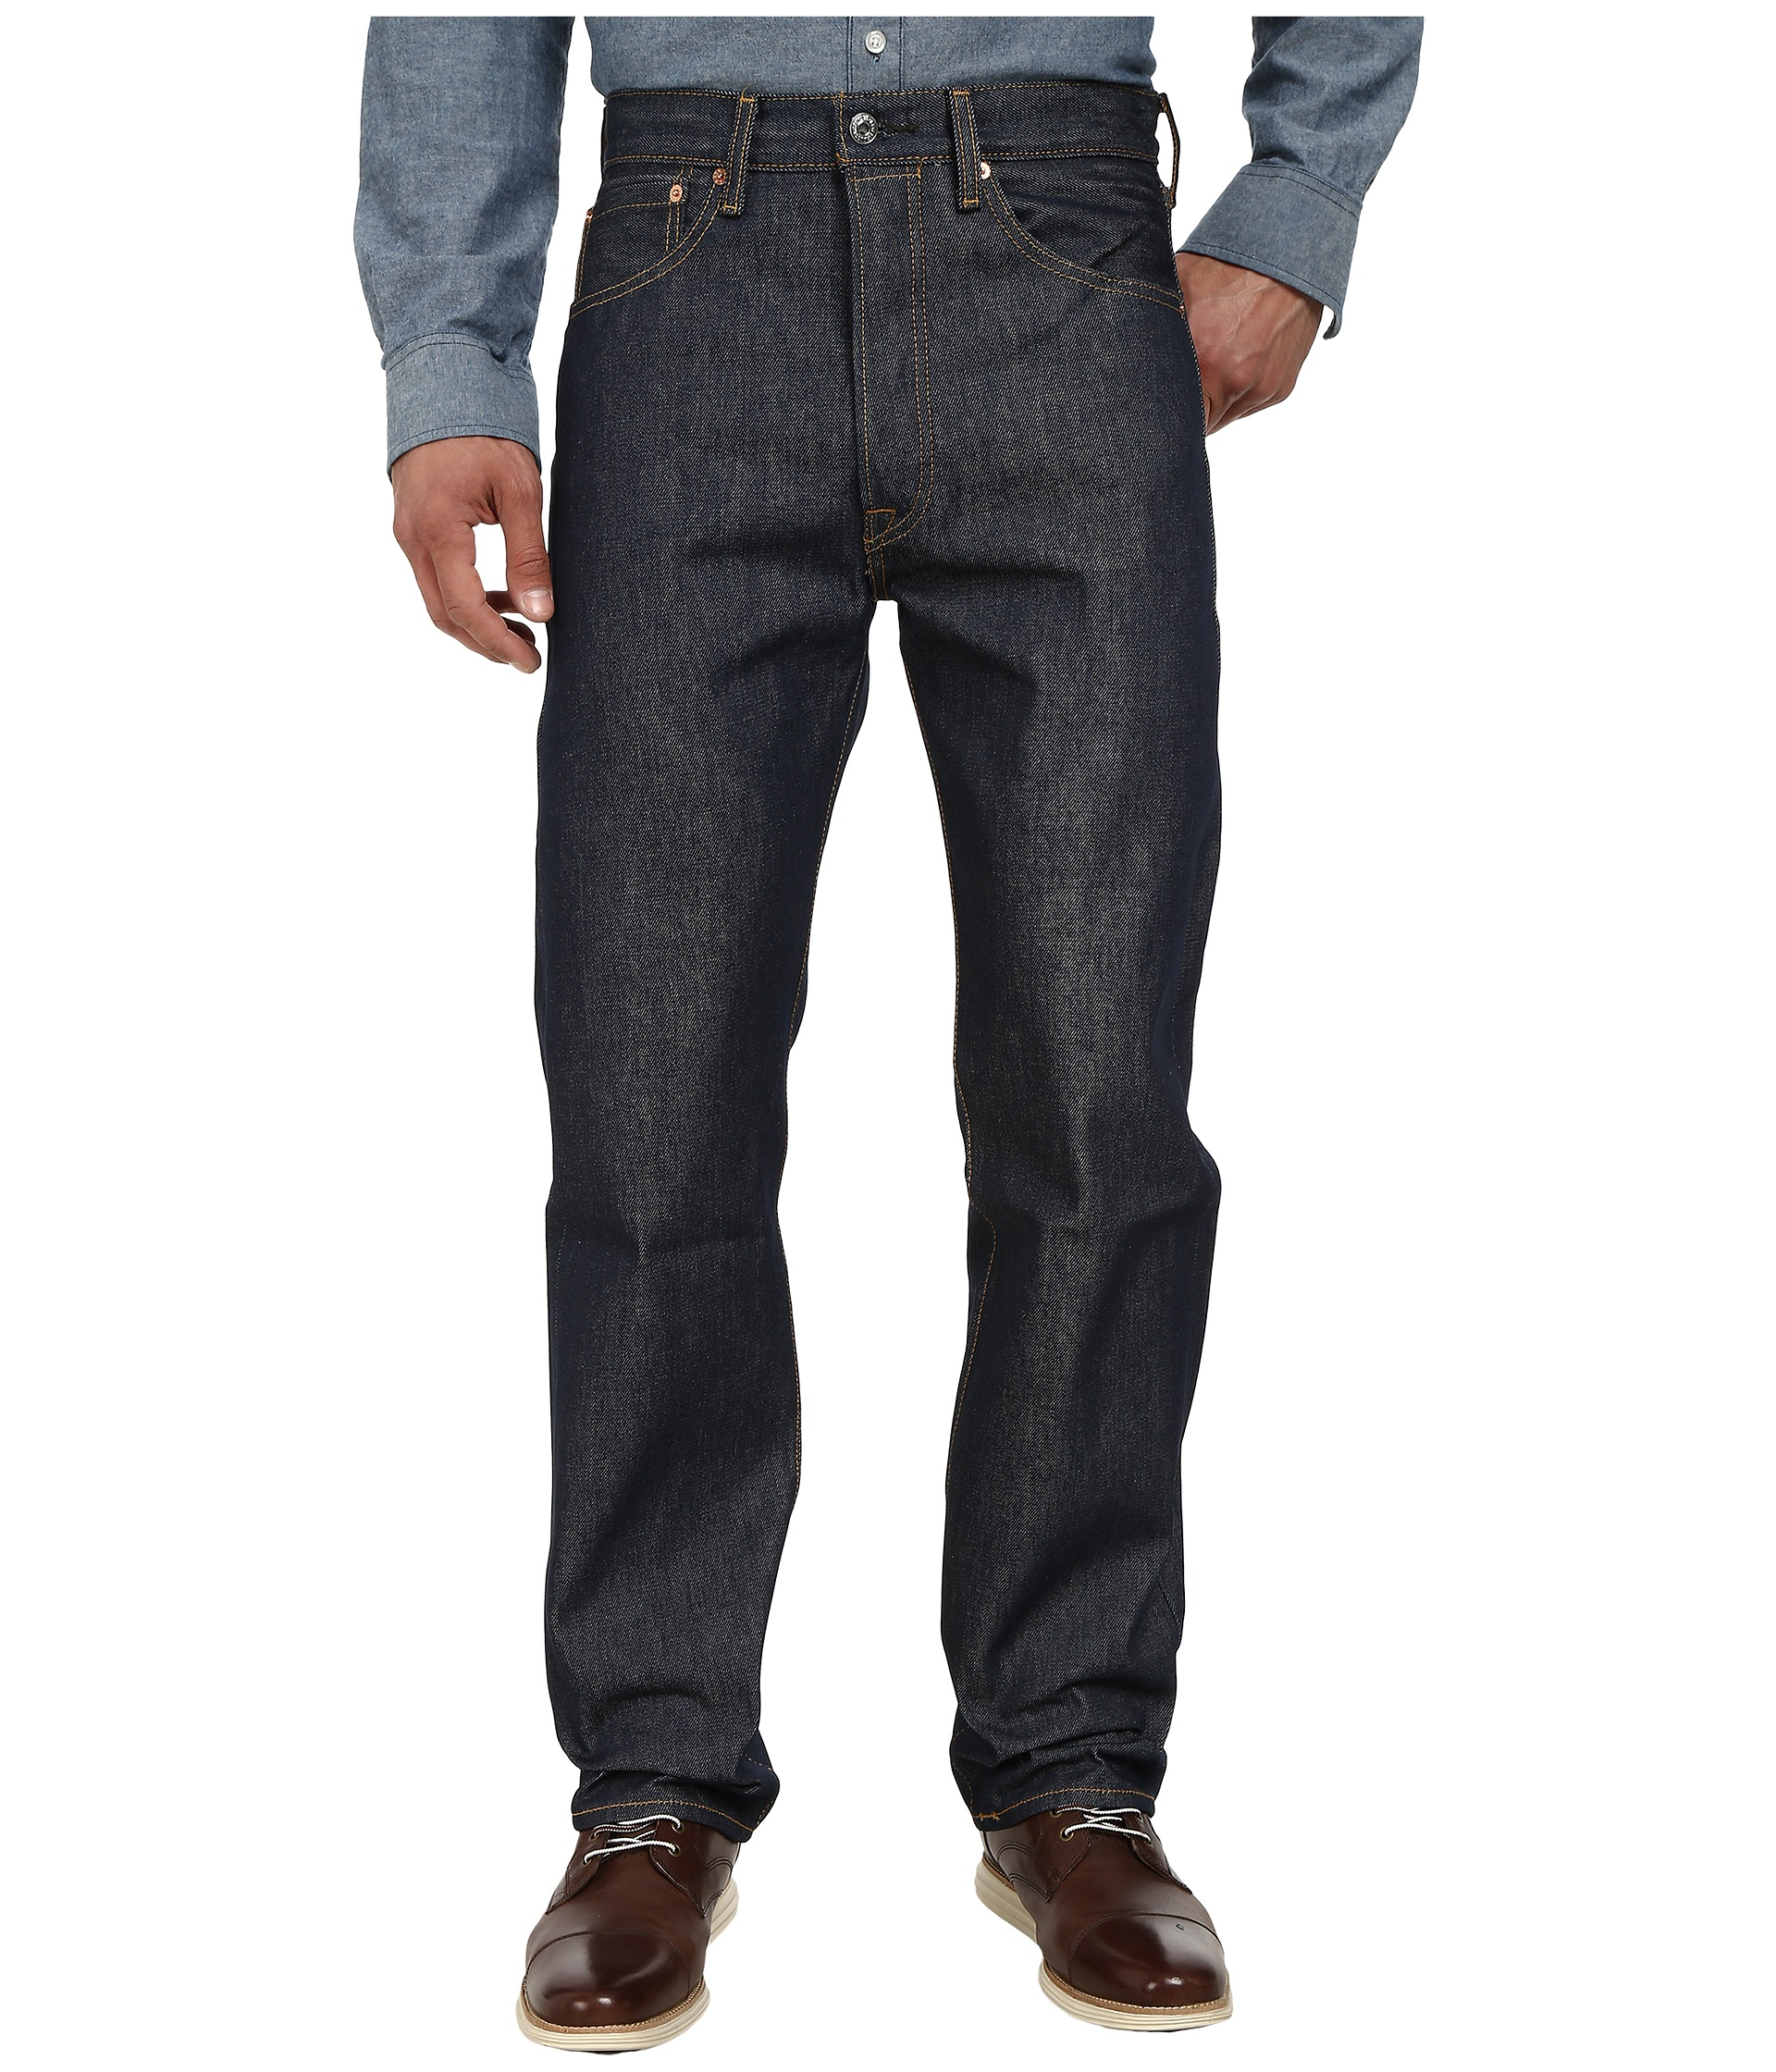 levi 39 s mens 501 original shrink to fit jeans at. Black Bedroom Furniture Sets. Home Design Ideas